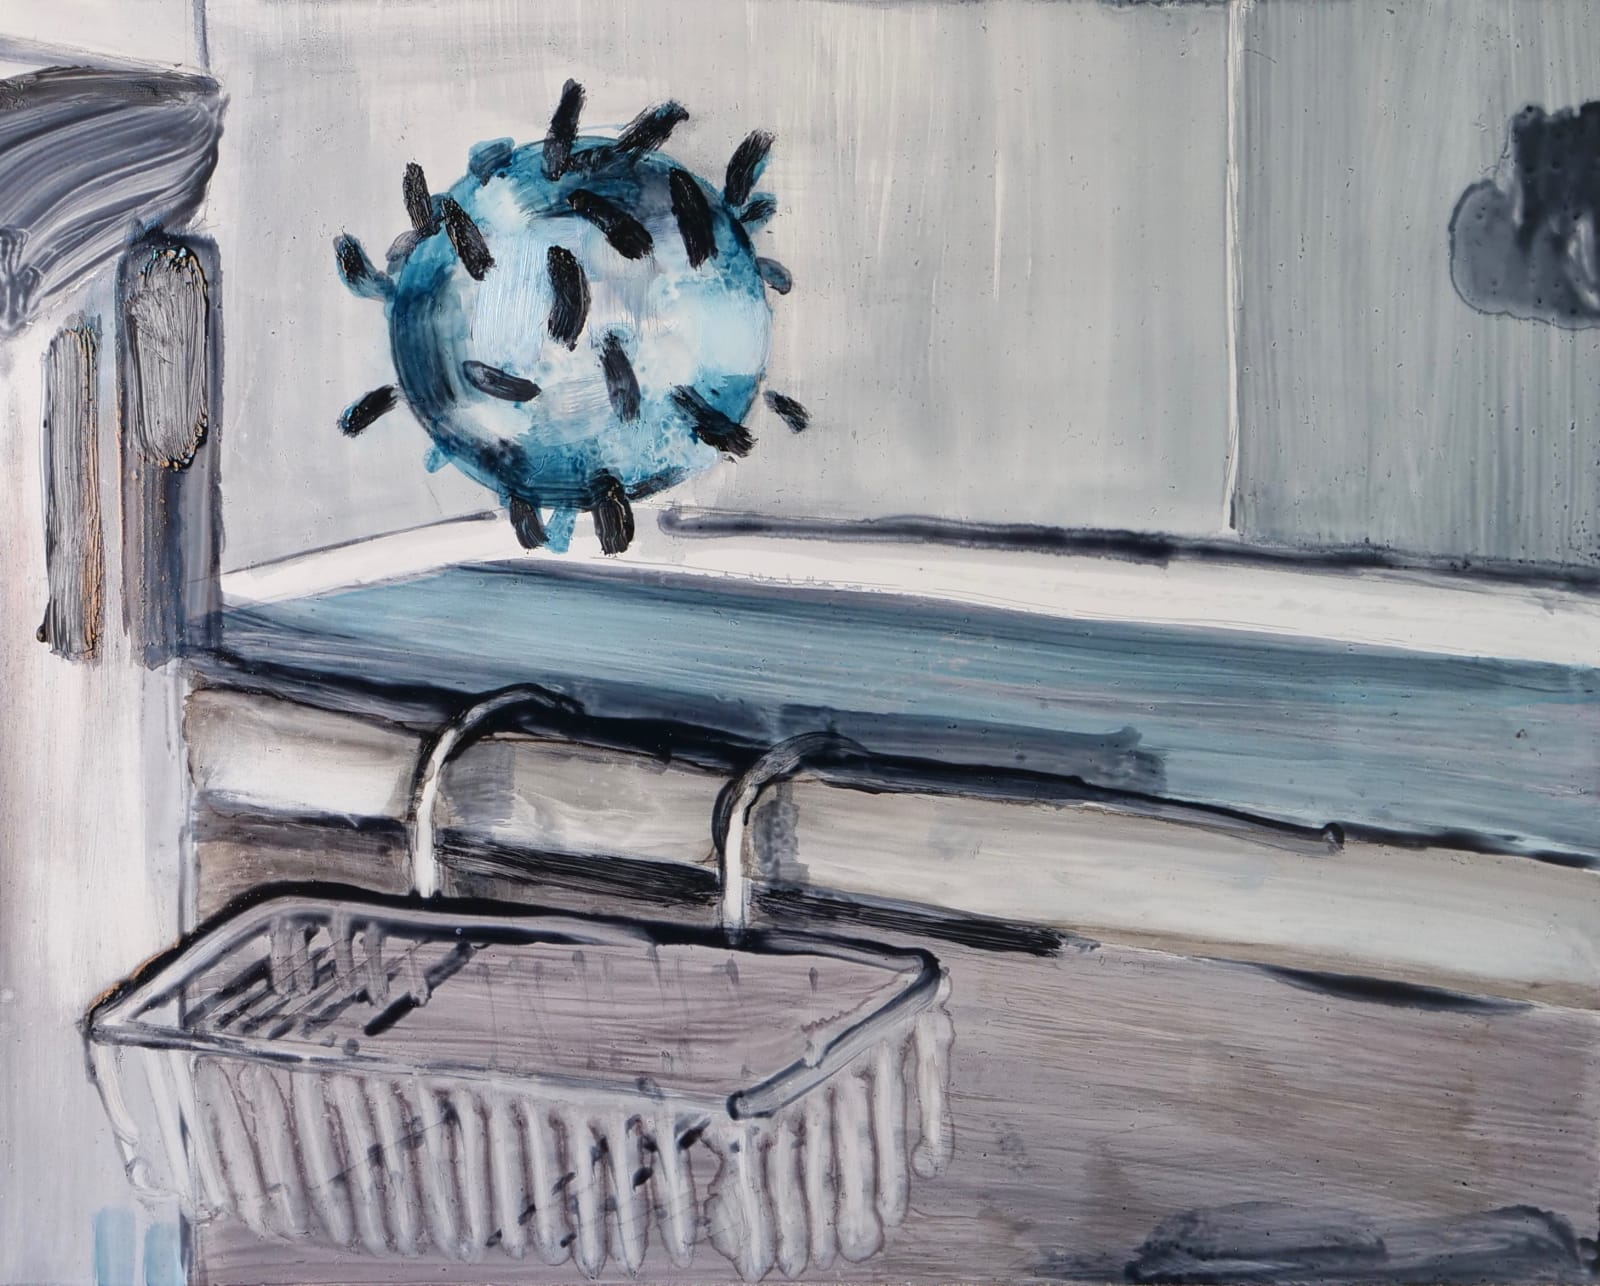 Robert Armstrong: Floating Covid, 2021, oil on panel, 24 x 30cm | Robert Armstrong: Covideos and Covid Paintings | Tuesday 9 March  – Monday 22 March 2021 | Kevin Kavanagh